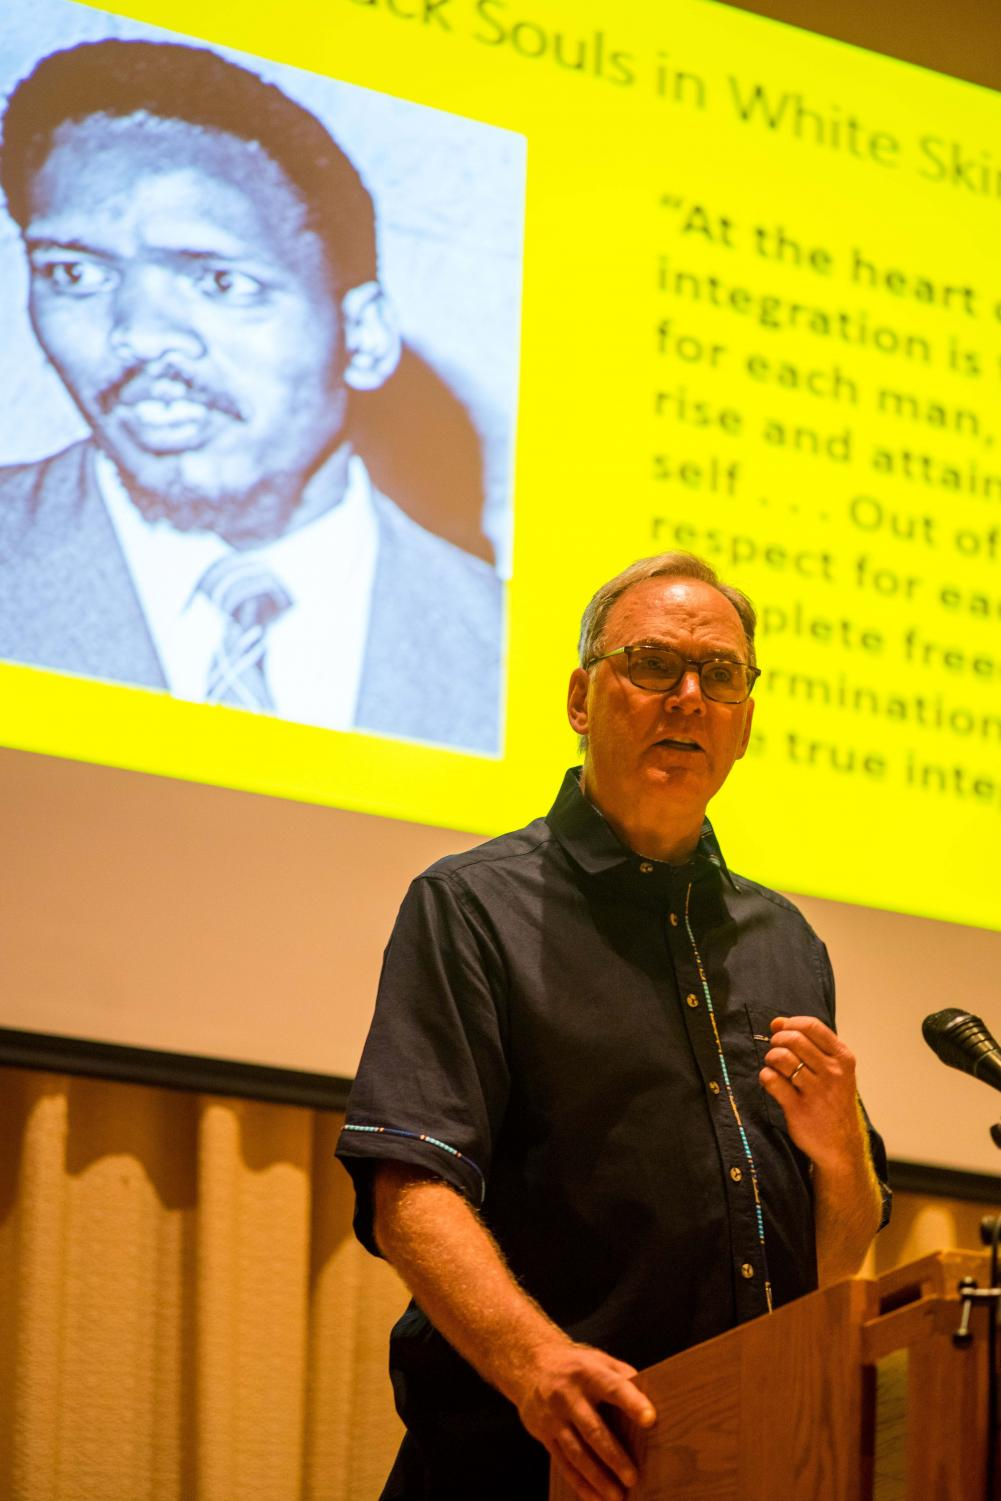 Professor of English Martin Klammer discusses Steve Biko's life and leadership during the Black Consciousness Movement.